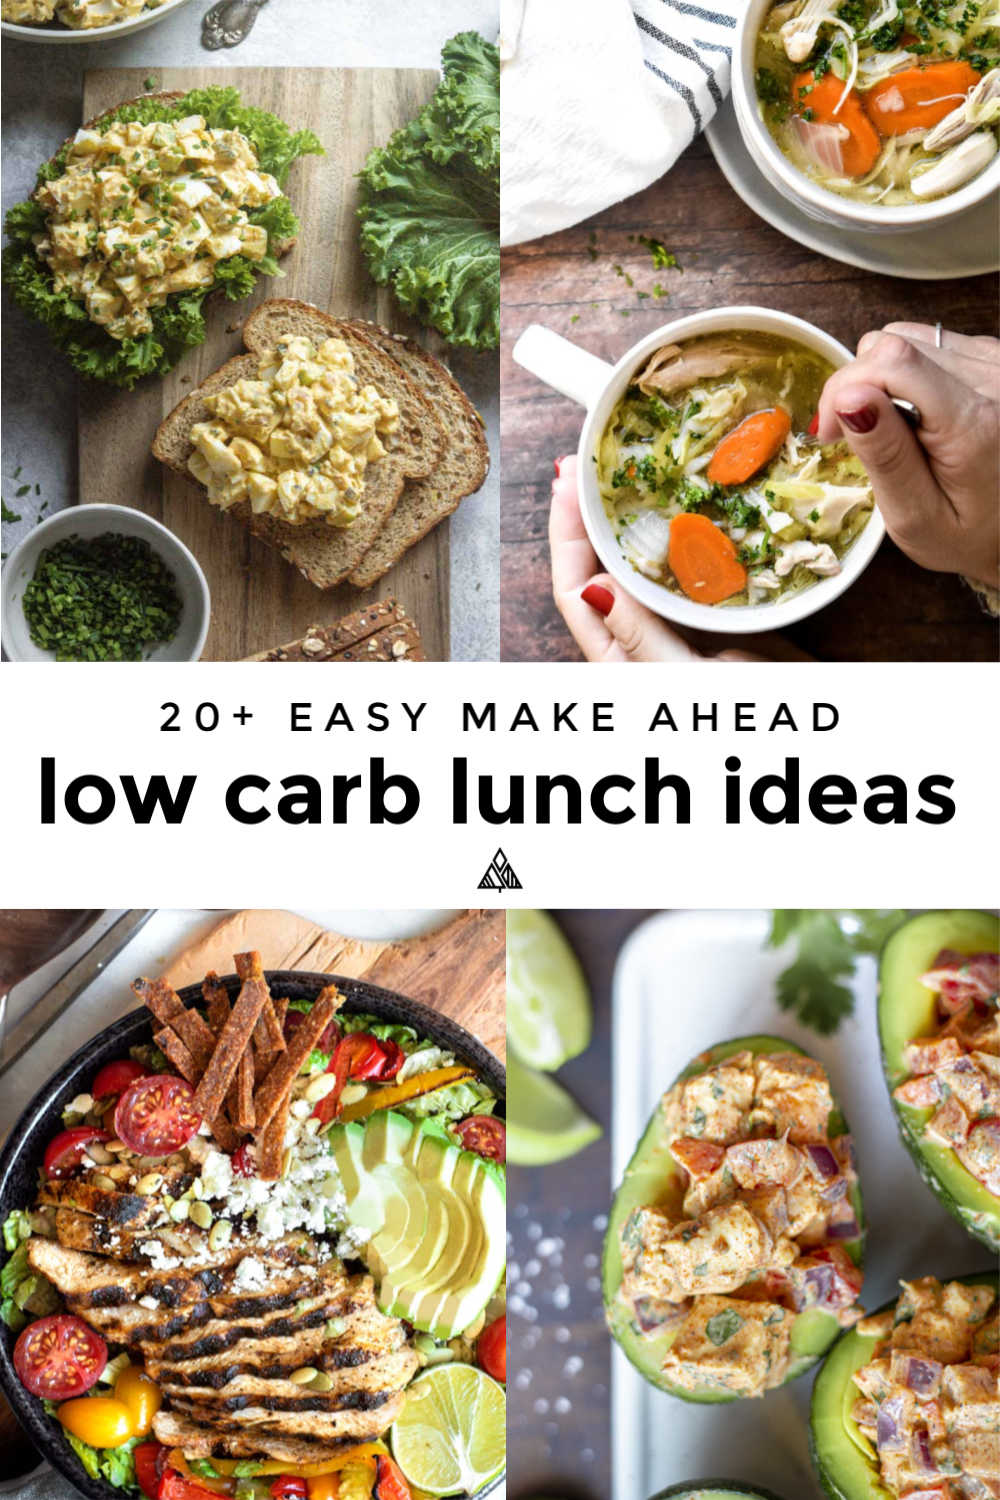 Low carb lunch ideas recipes are here for the win! Forget stressin' on Sunday's about this week's lunches! Kick back, this is your super-duper low carb cheat sheet! #lowcarblunchideas #ketolunchideas